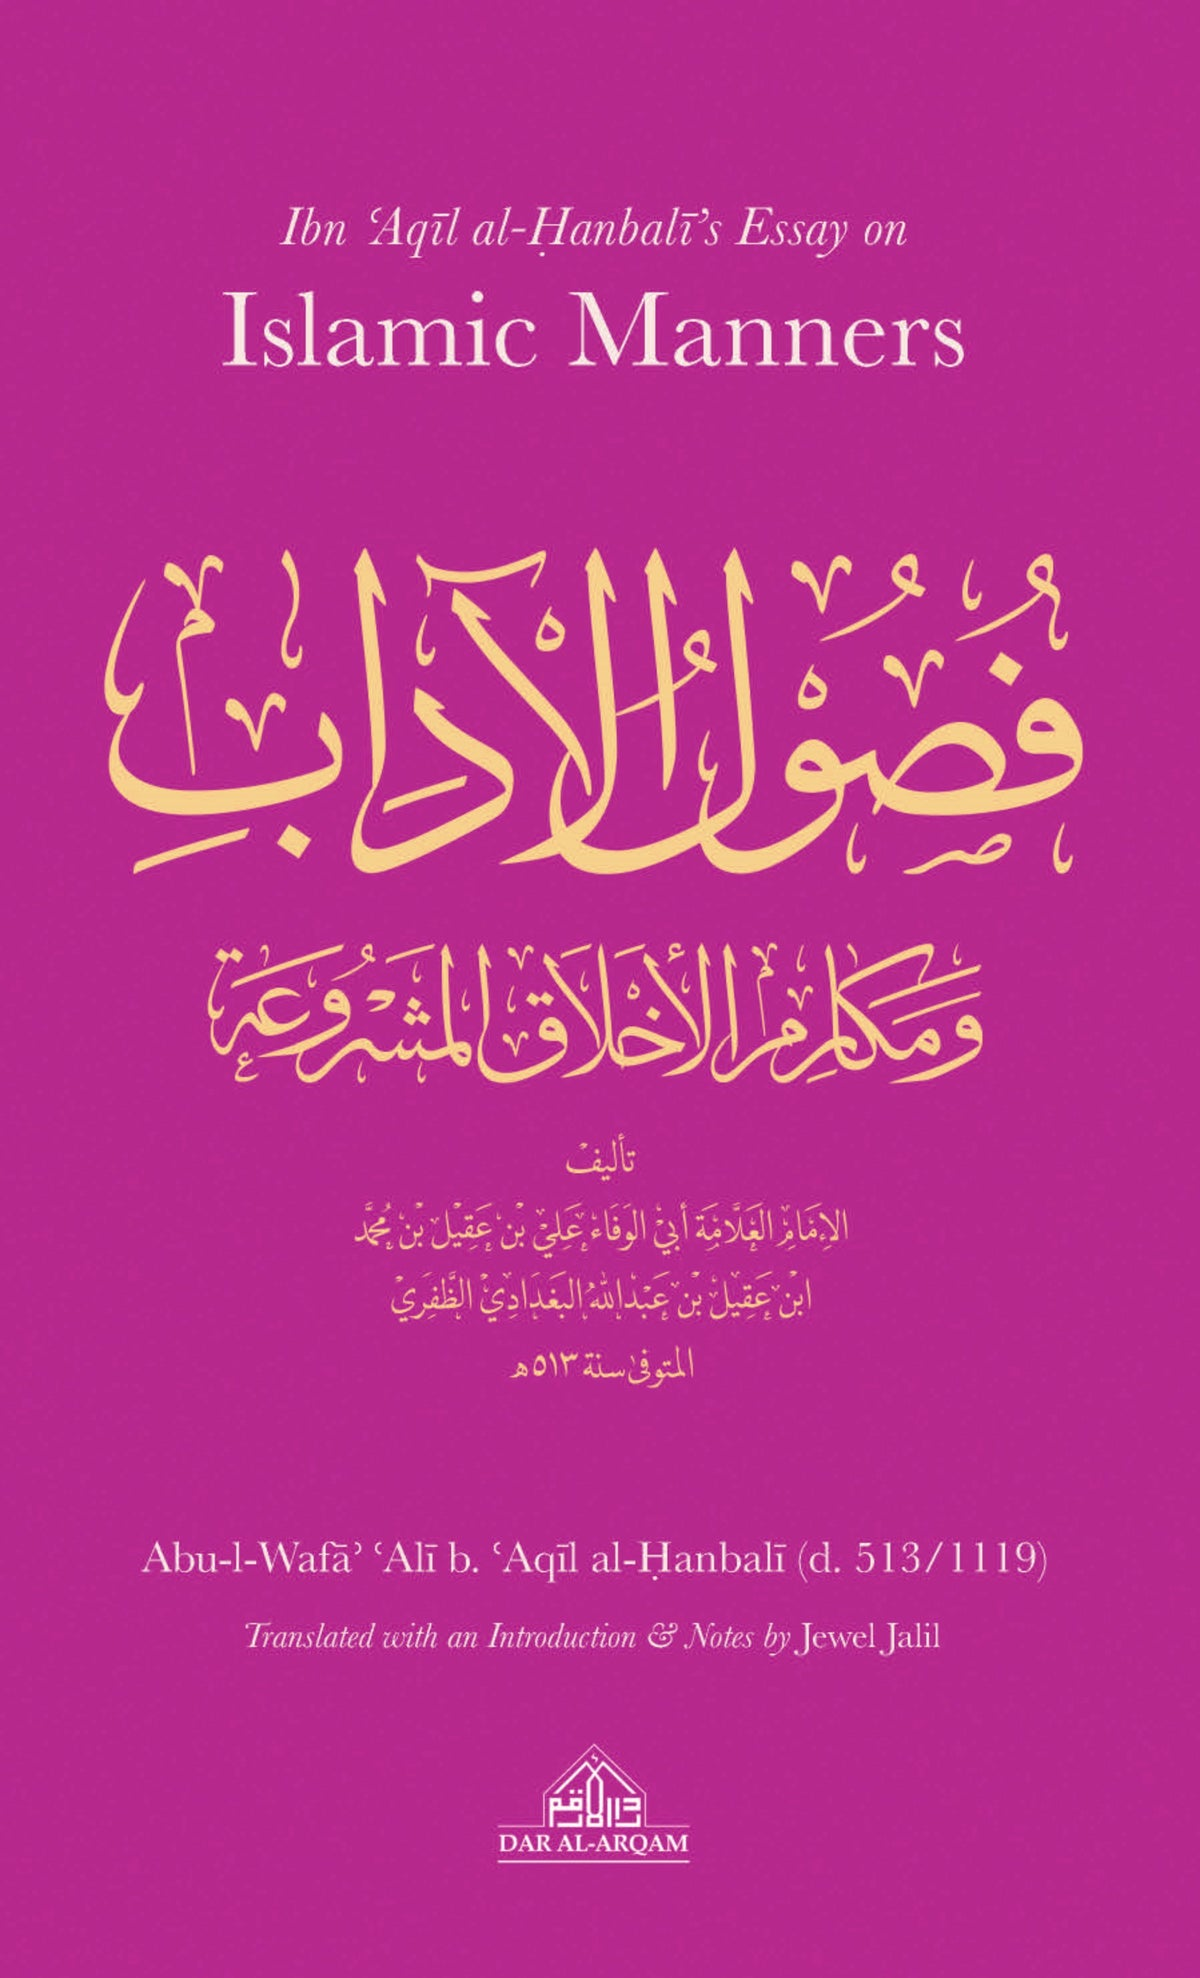 Image of Essay on Islamic Manners